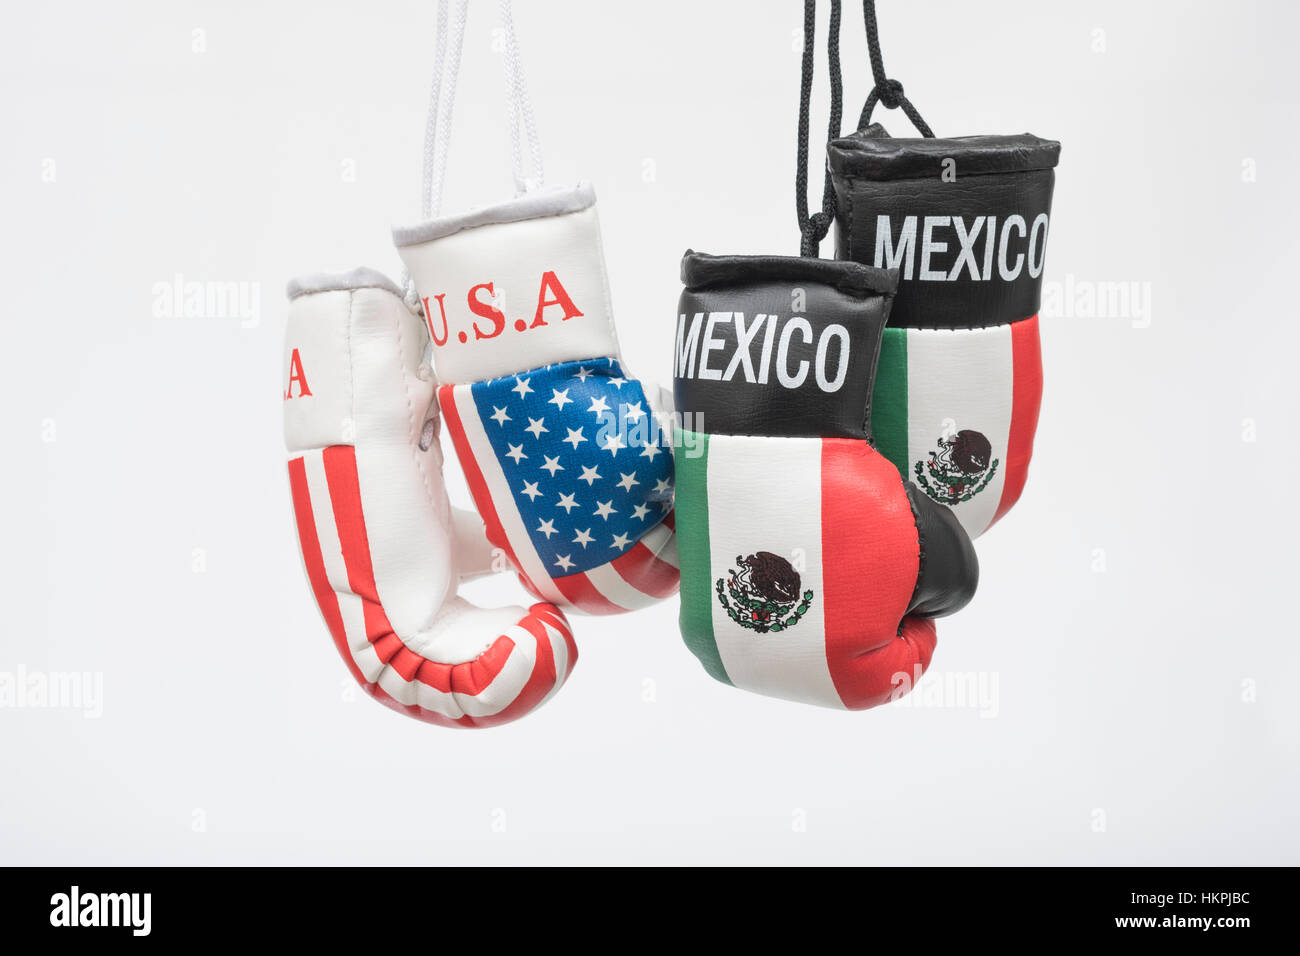 America-Mexico stand-off (Donald Trump) represented by hanging USA and Mexican emblem boxing gloves. NAFTA breakdown - Stock Image